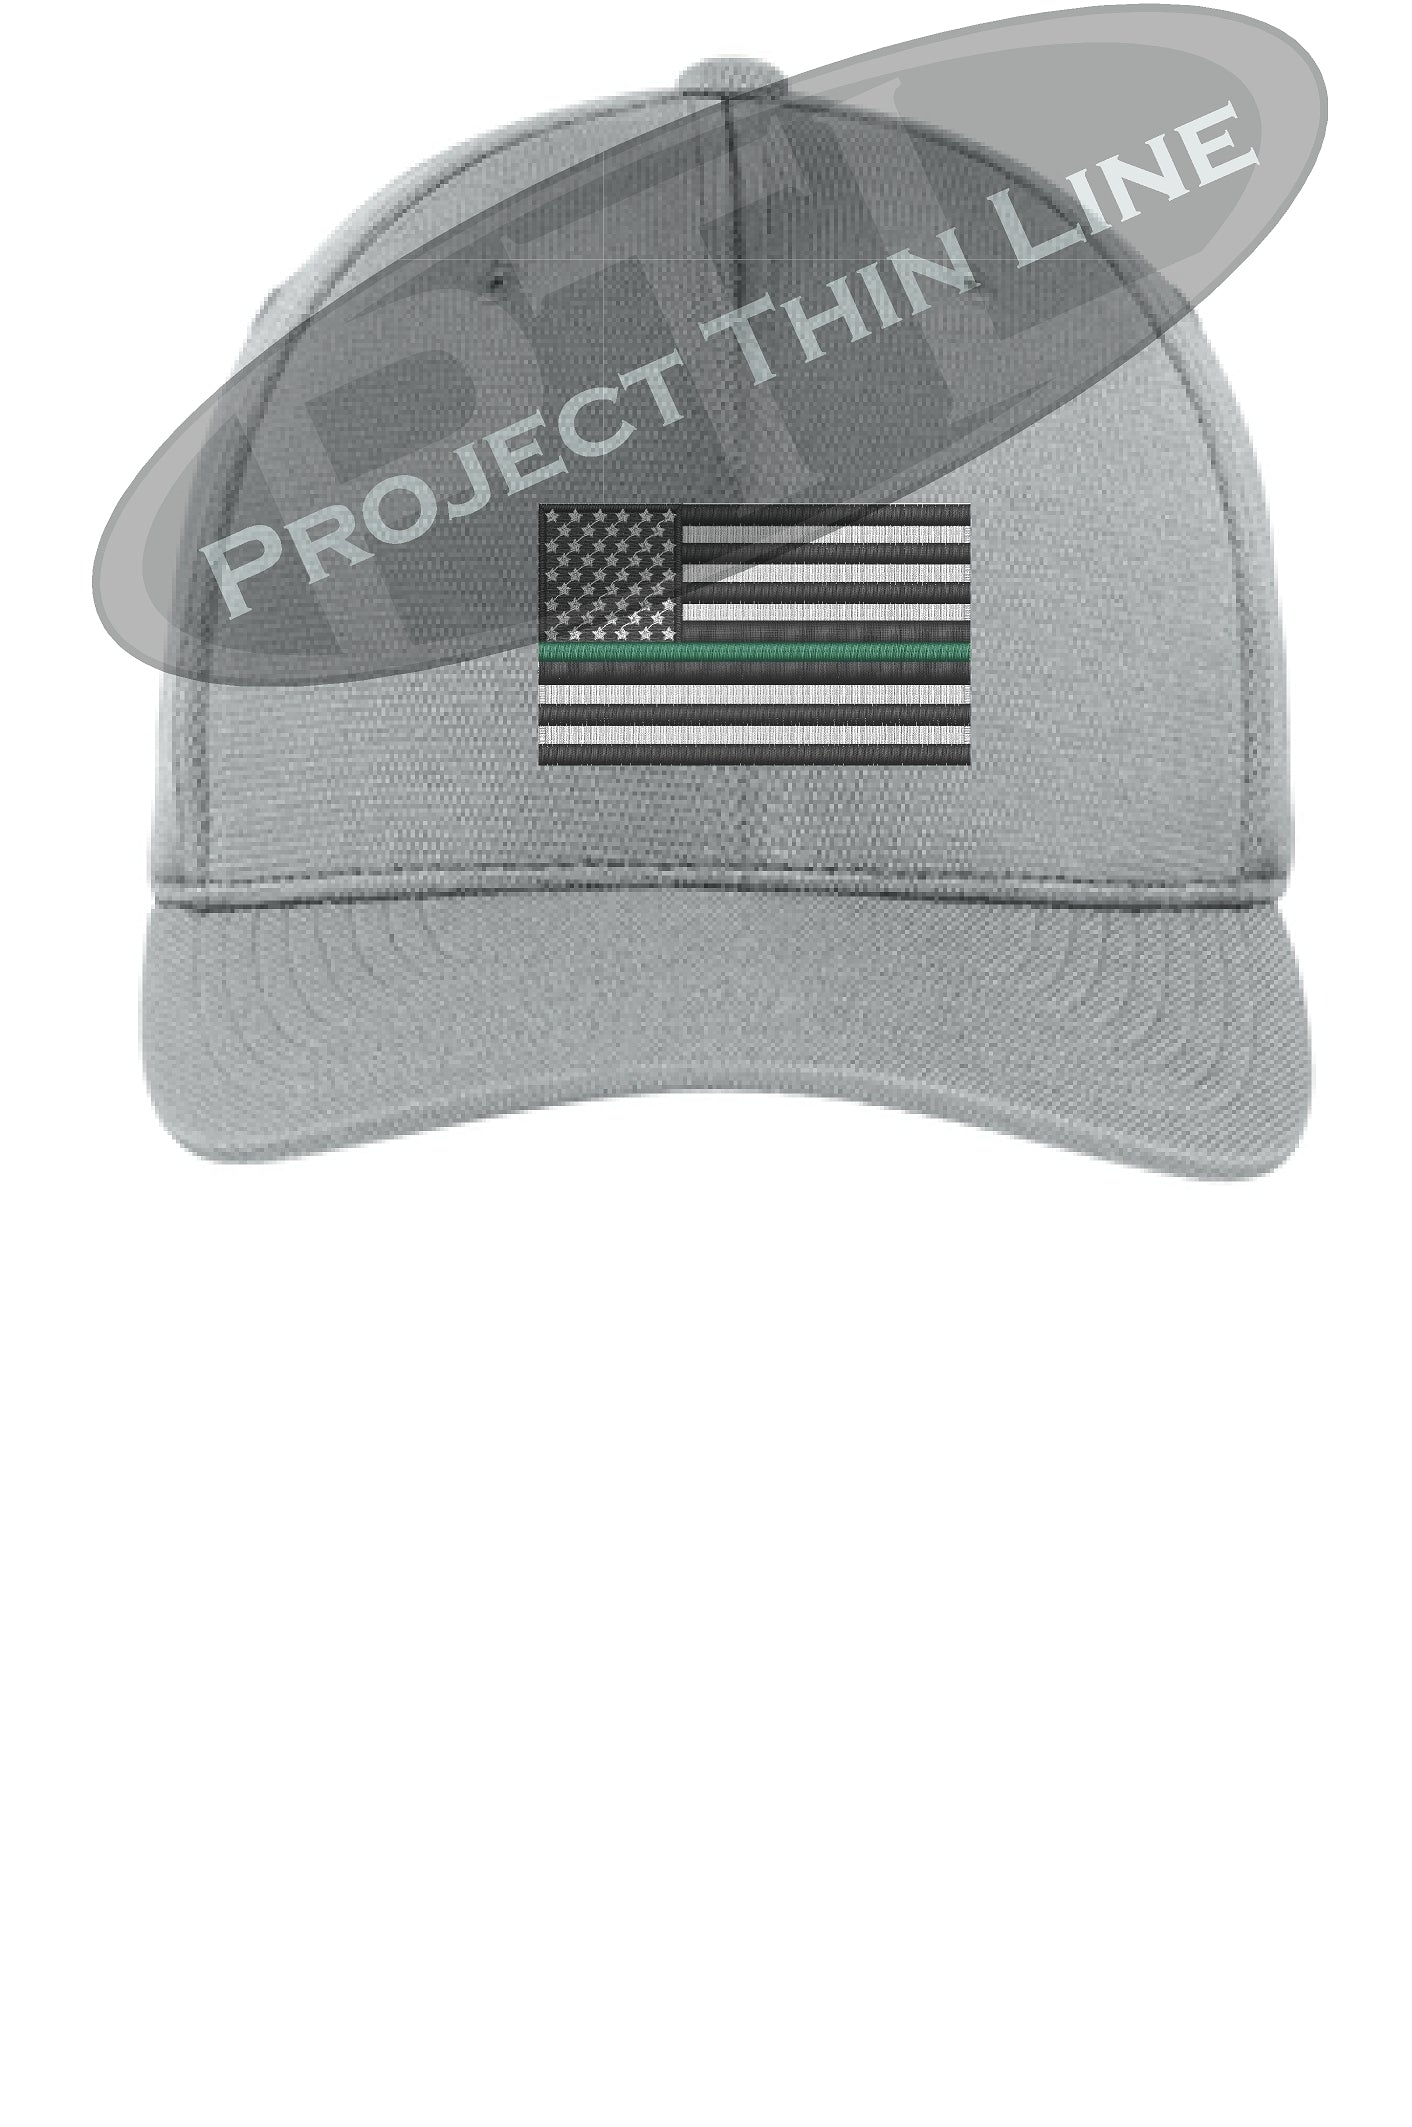 50bc9d91 Embroidered Thin Green Line American Flag Flex Fit Fitted Baseball Hat